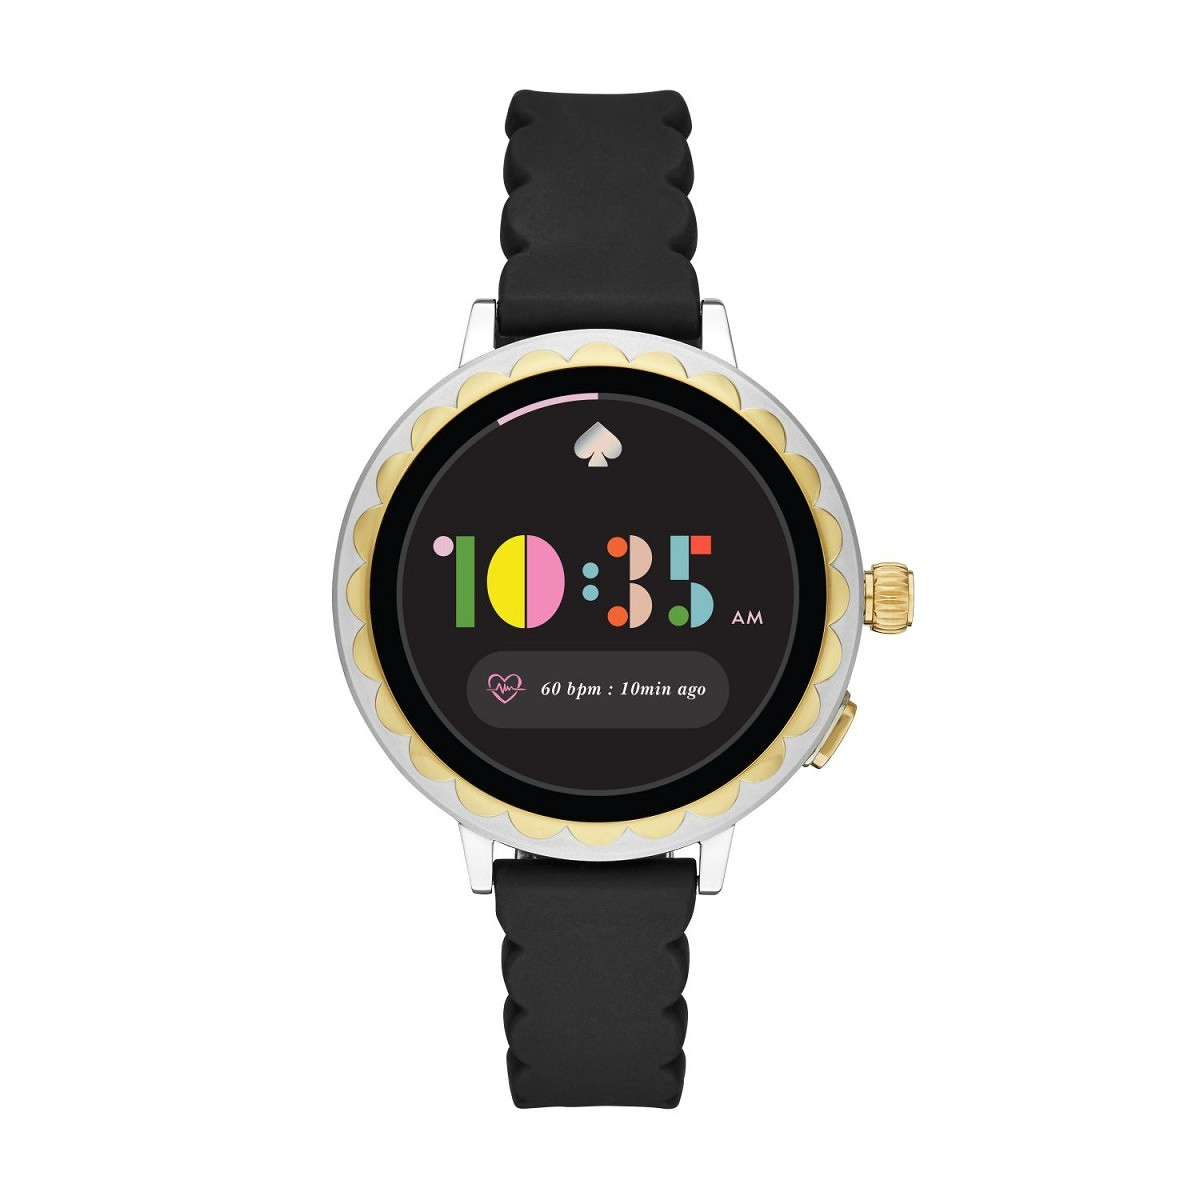 Fossil Announces The Kate Spade Scallop Smartwatch 2 Collection And